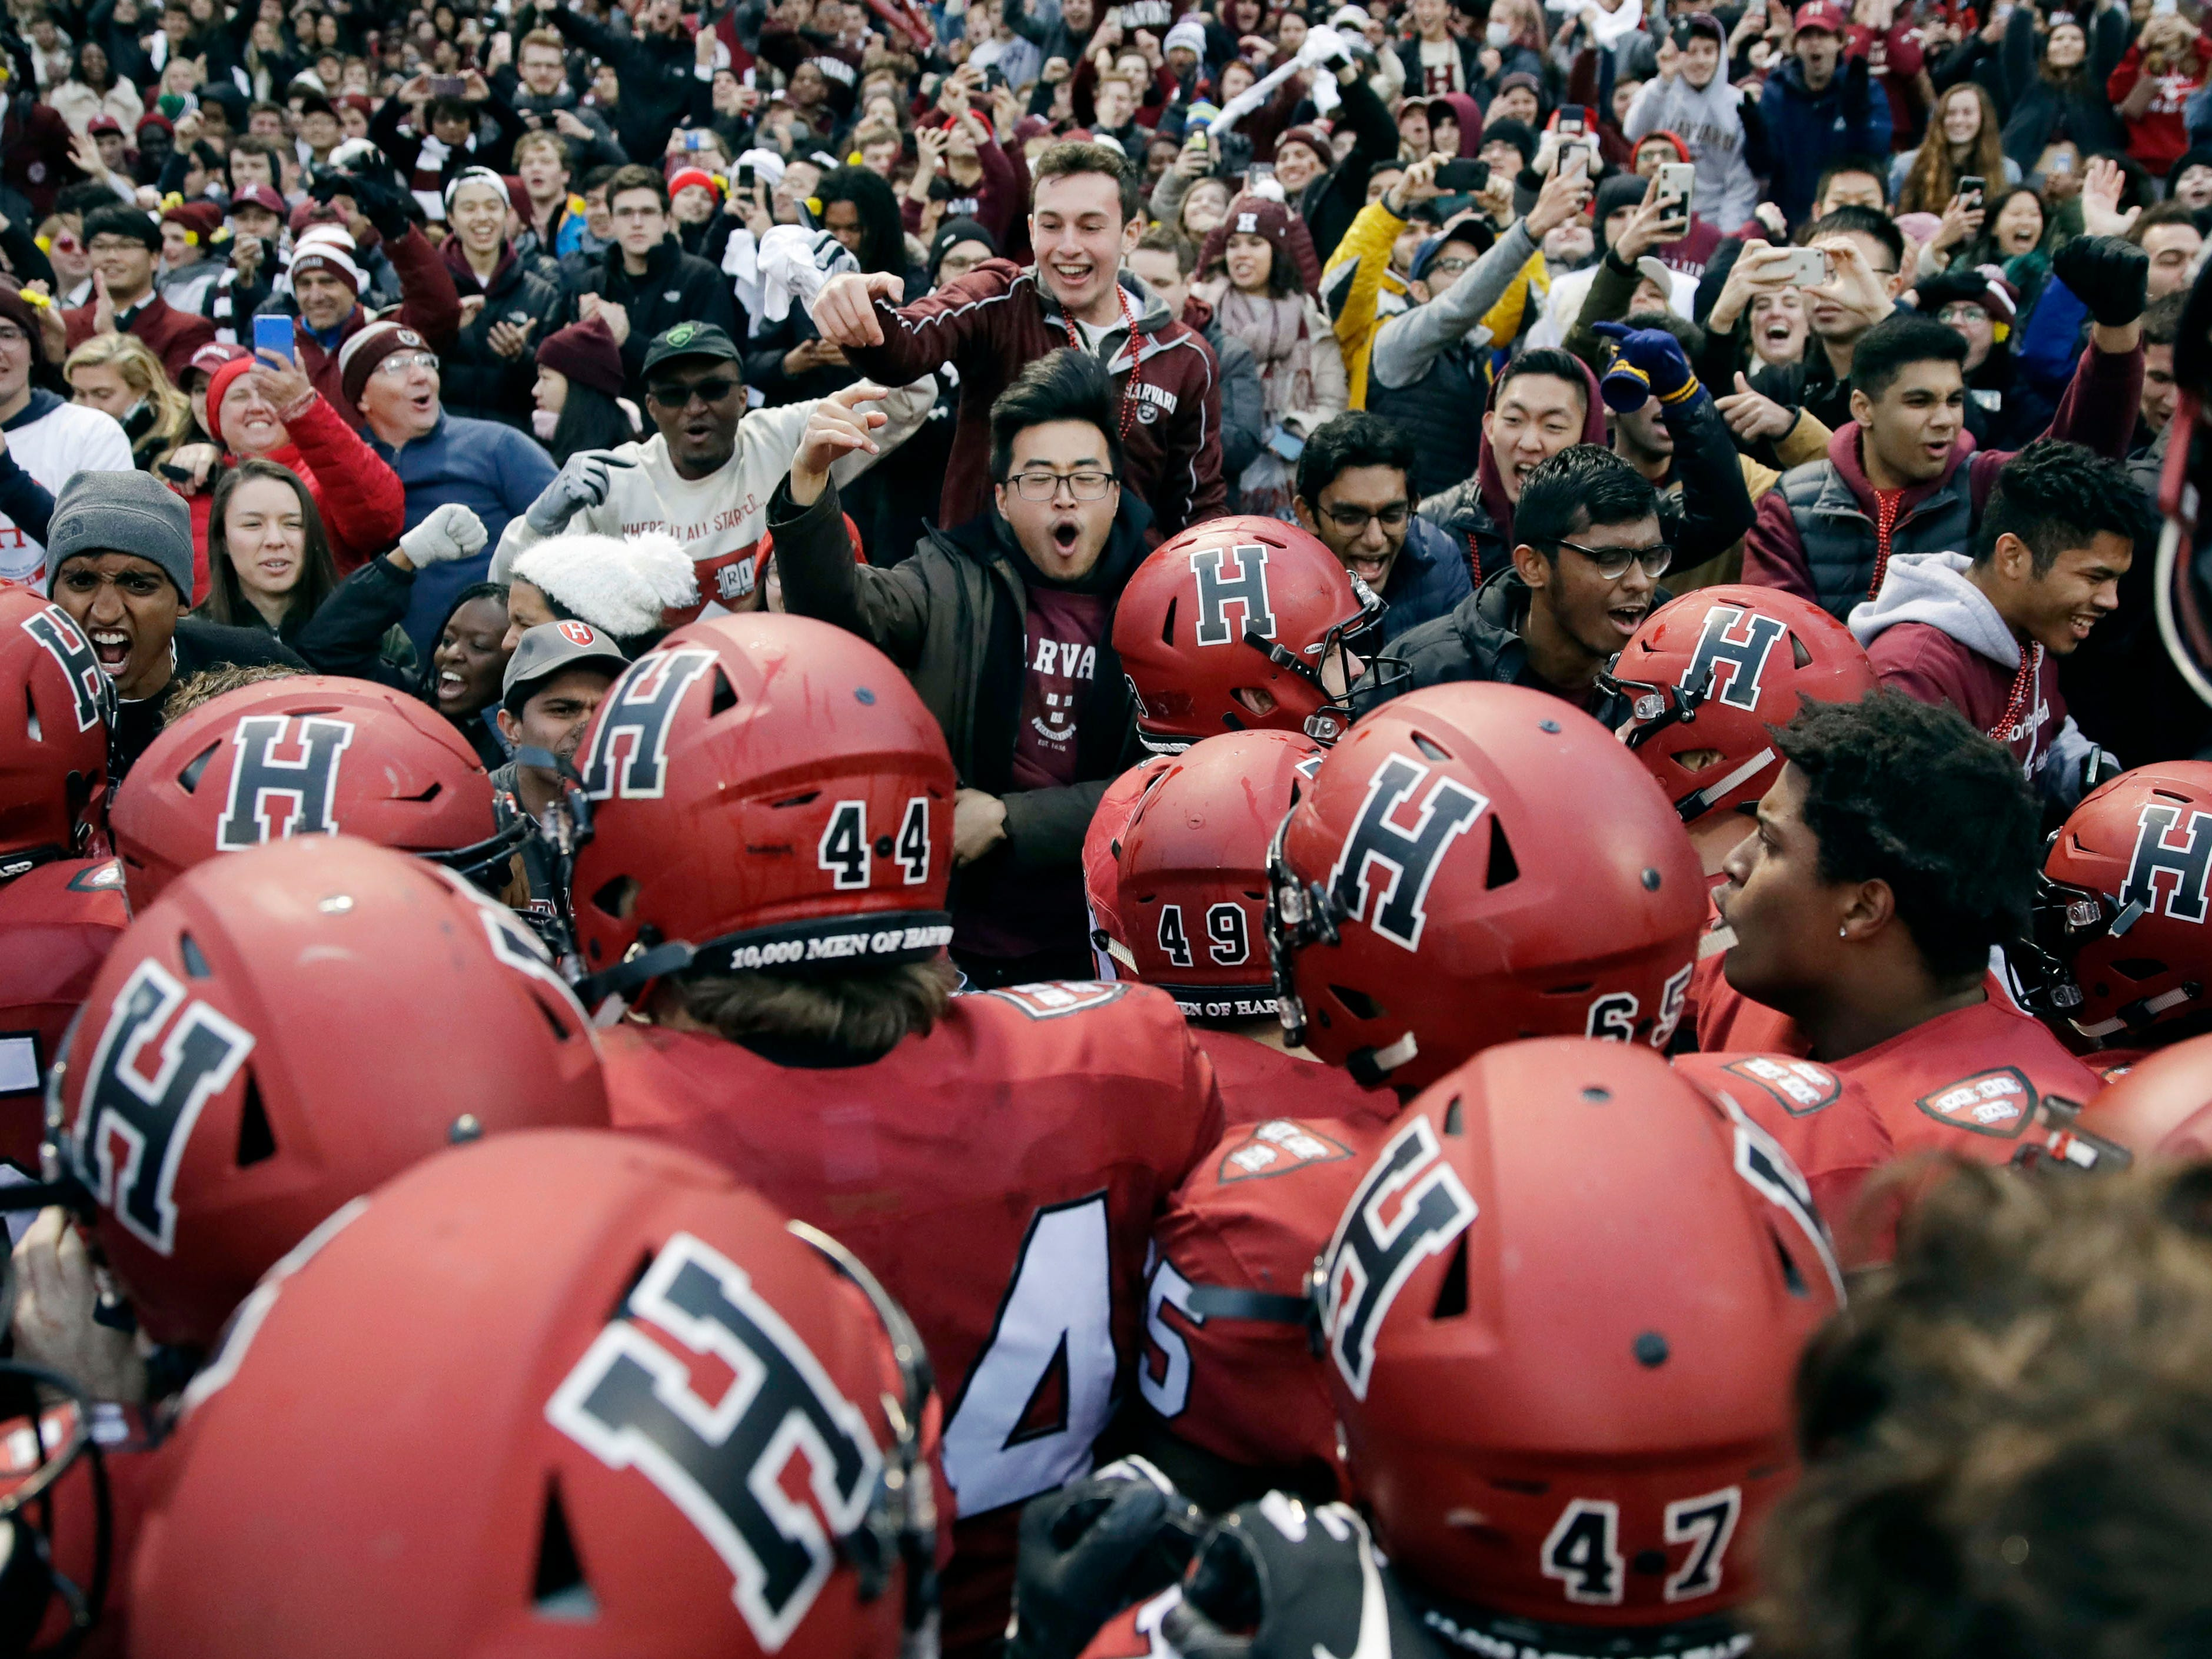 Harvard players, students and fans celebrate a win over Yale after an NCAA college football game at Fenway Park in Boston, Saturday, Nov. 17, 2018. Harvard defeated Yale 45-27.